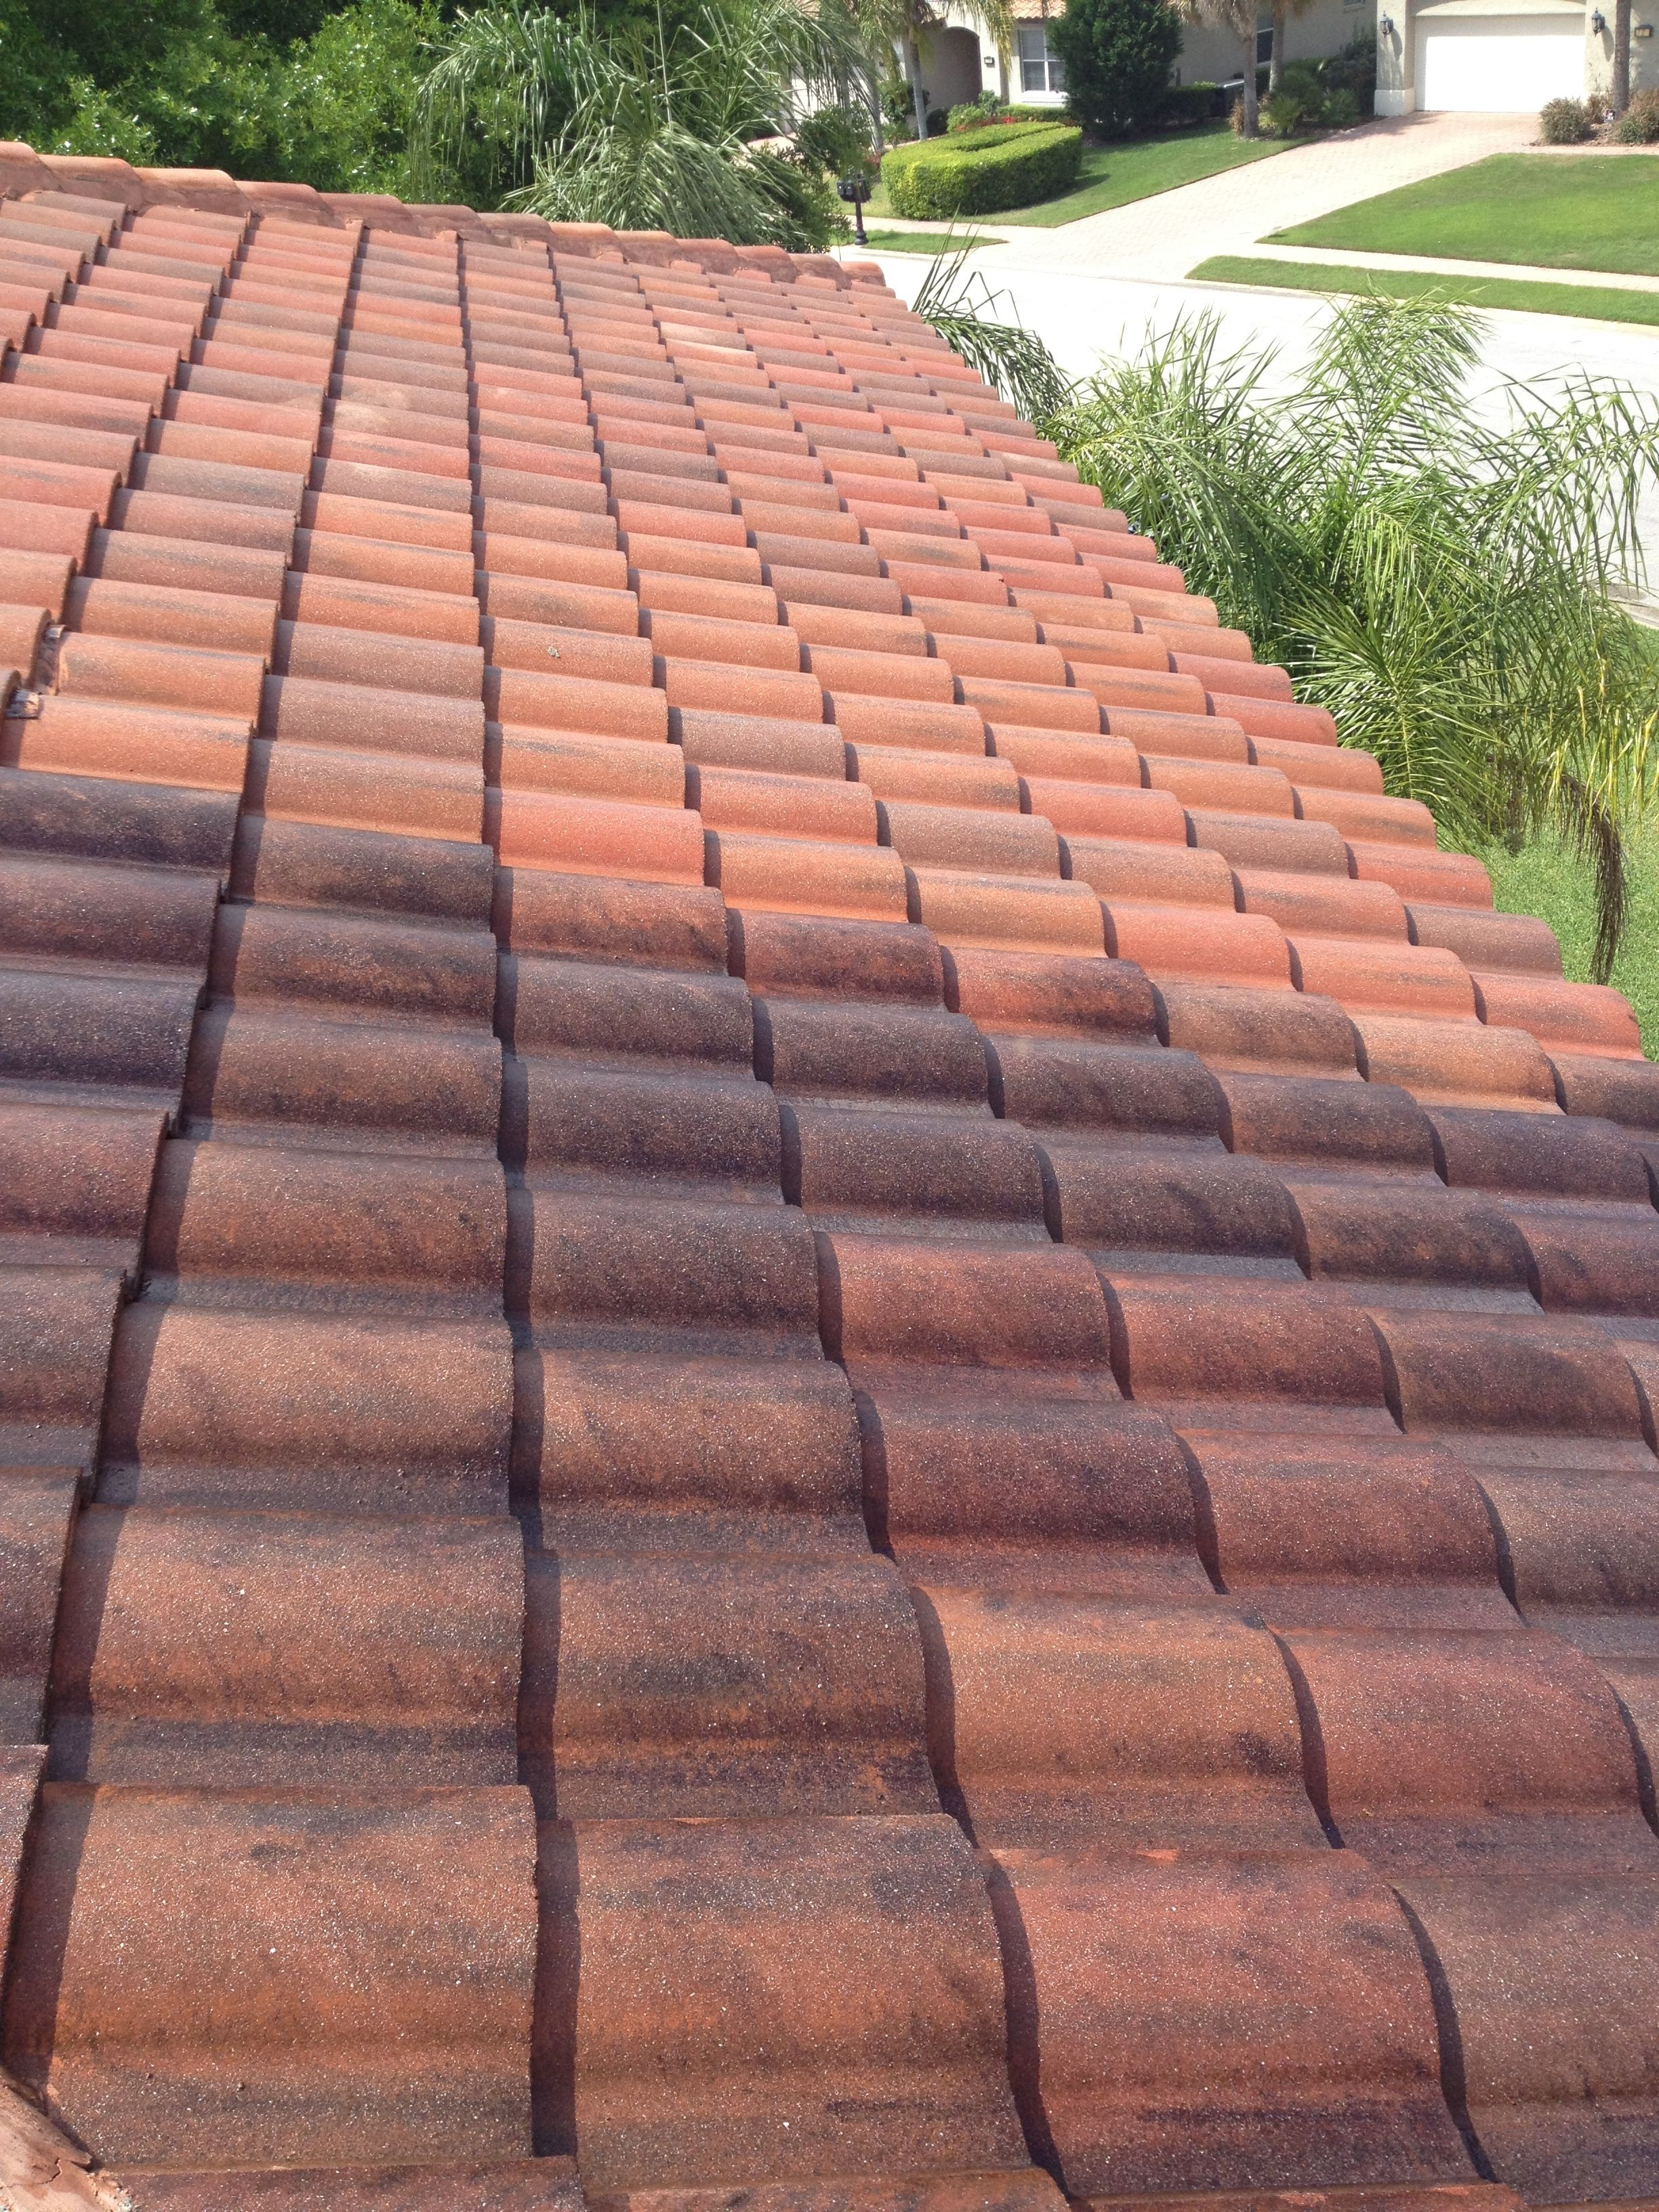 Tile Roof Cleaning Bcoxroofing Com